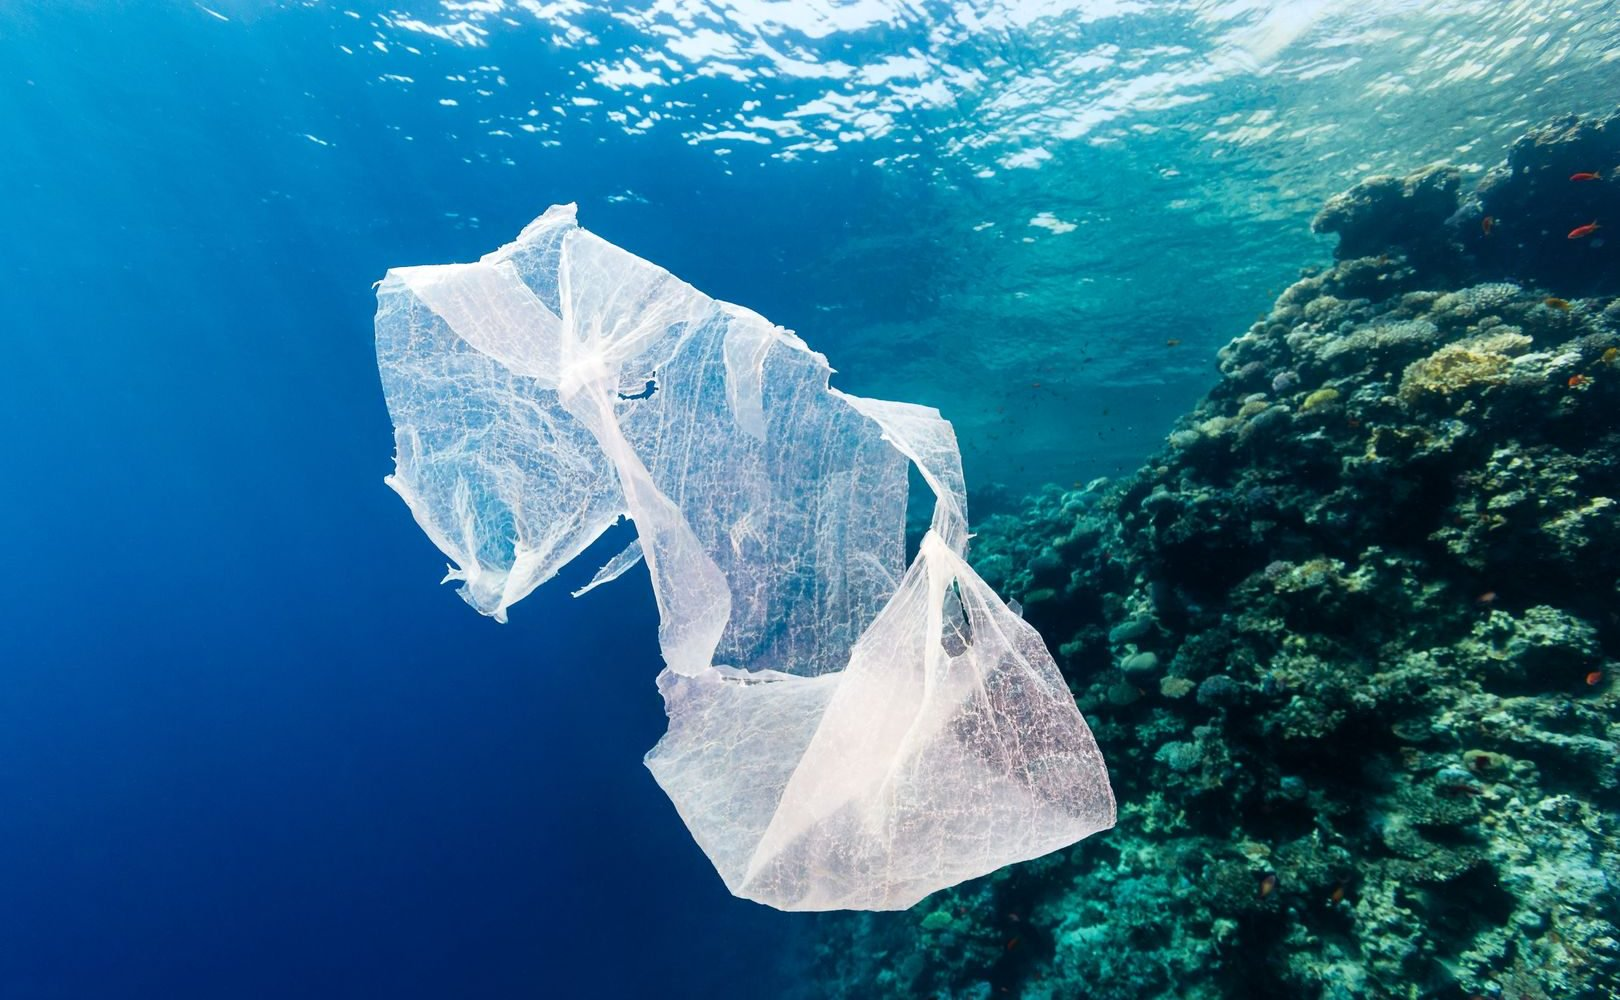 National Geographic and Sky team up to rid oceans of plastic